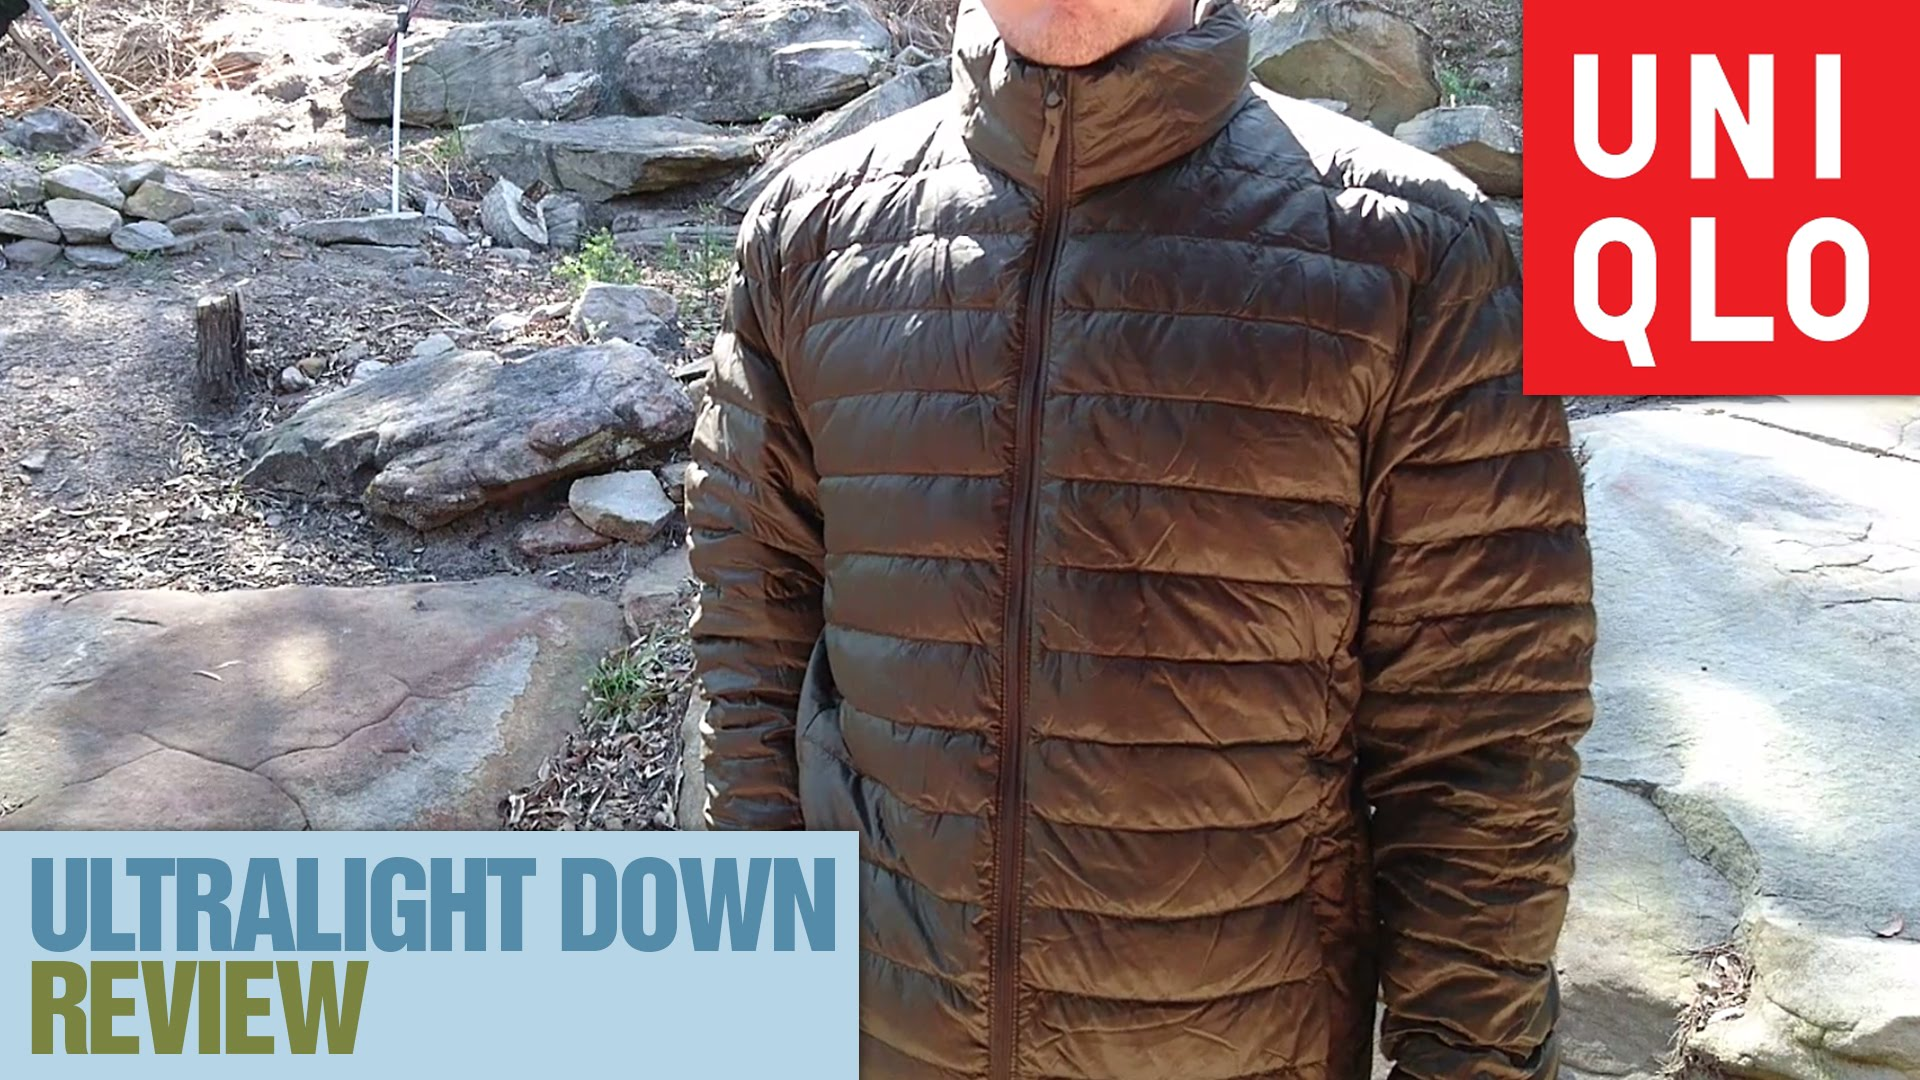 UNIQLO-Ultralight-Down-Jacket-Review